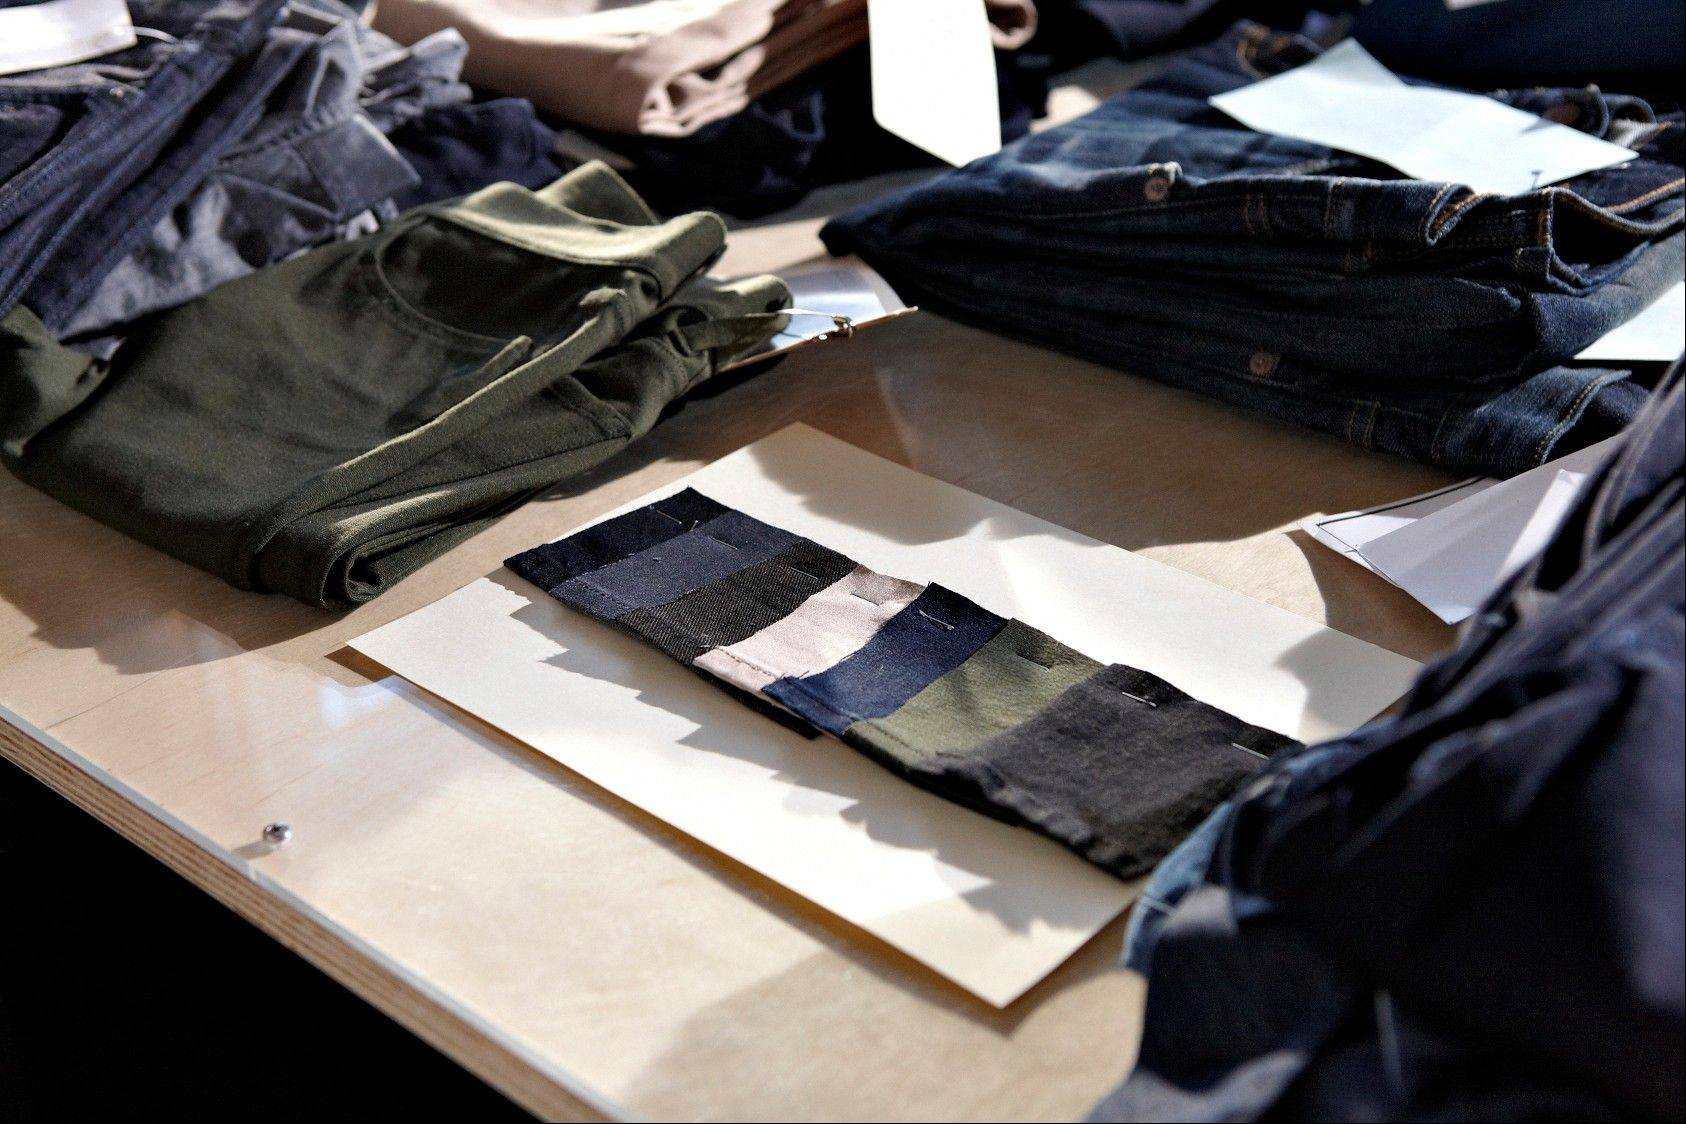 Gap, the nation's largest clothing chain, rolled out a marketing campaign that features 30- to 90-second online documentary-style videos centered around the goings on at its denim design studio in Los Angeles called the Pico Creative Loft.